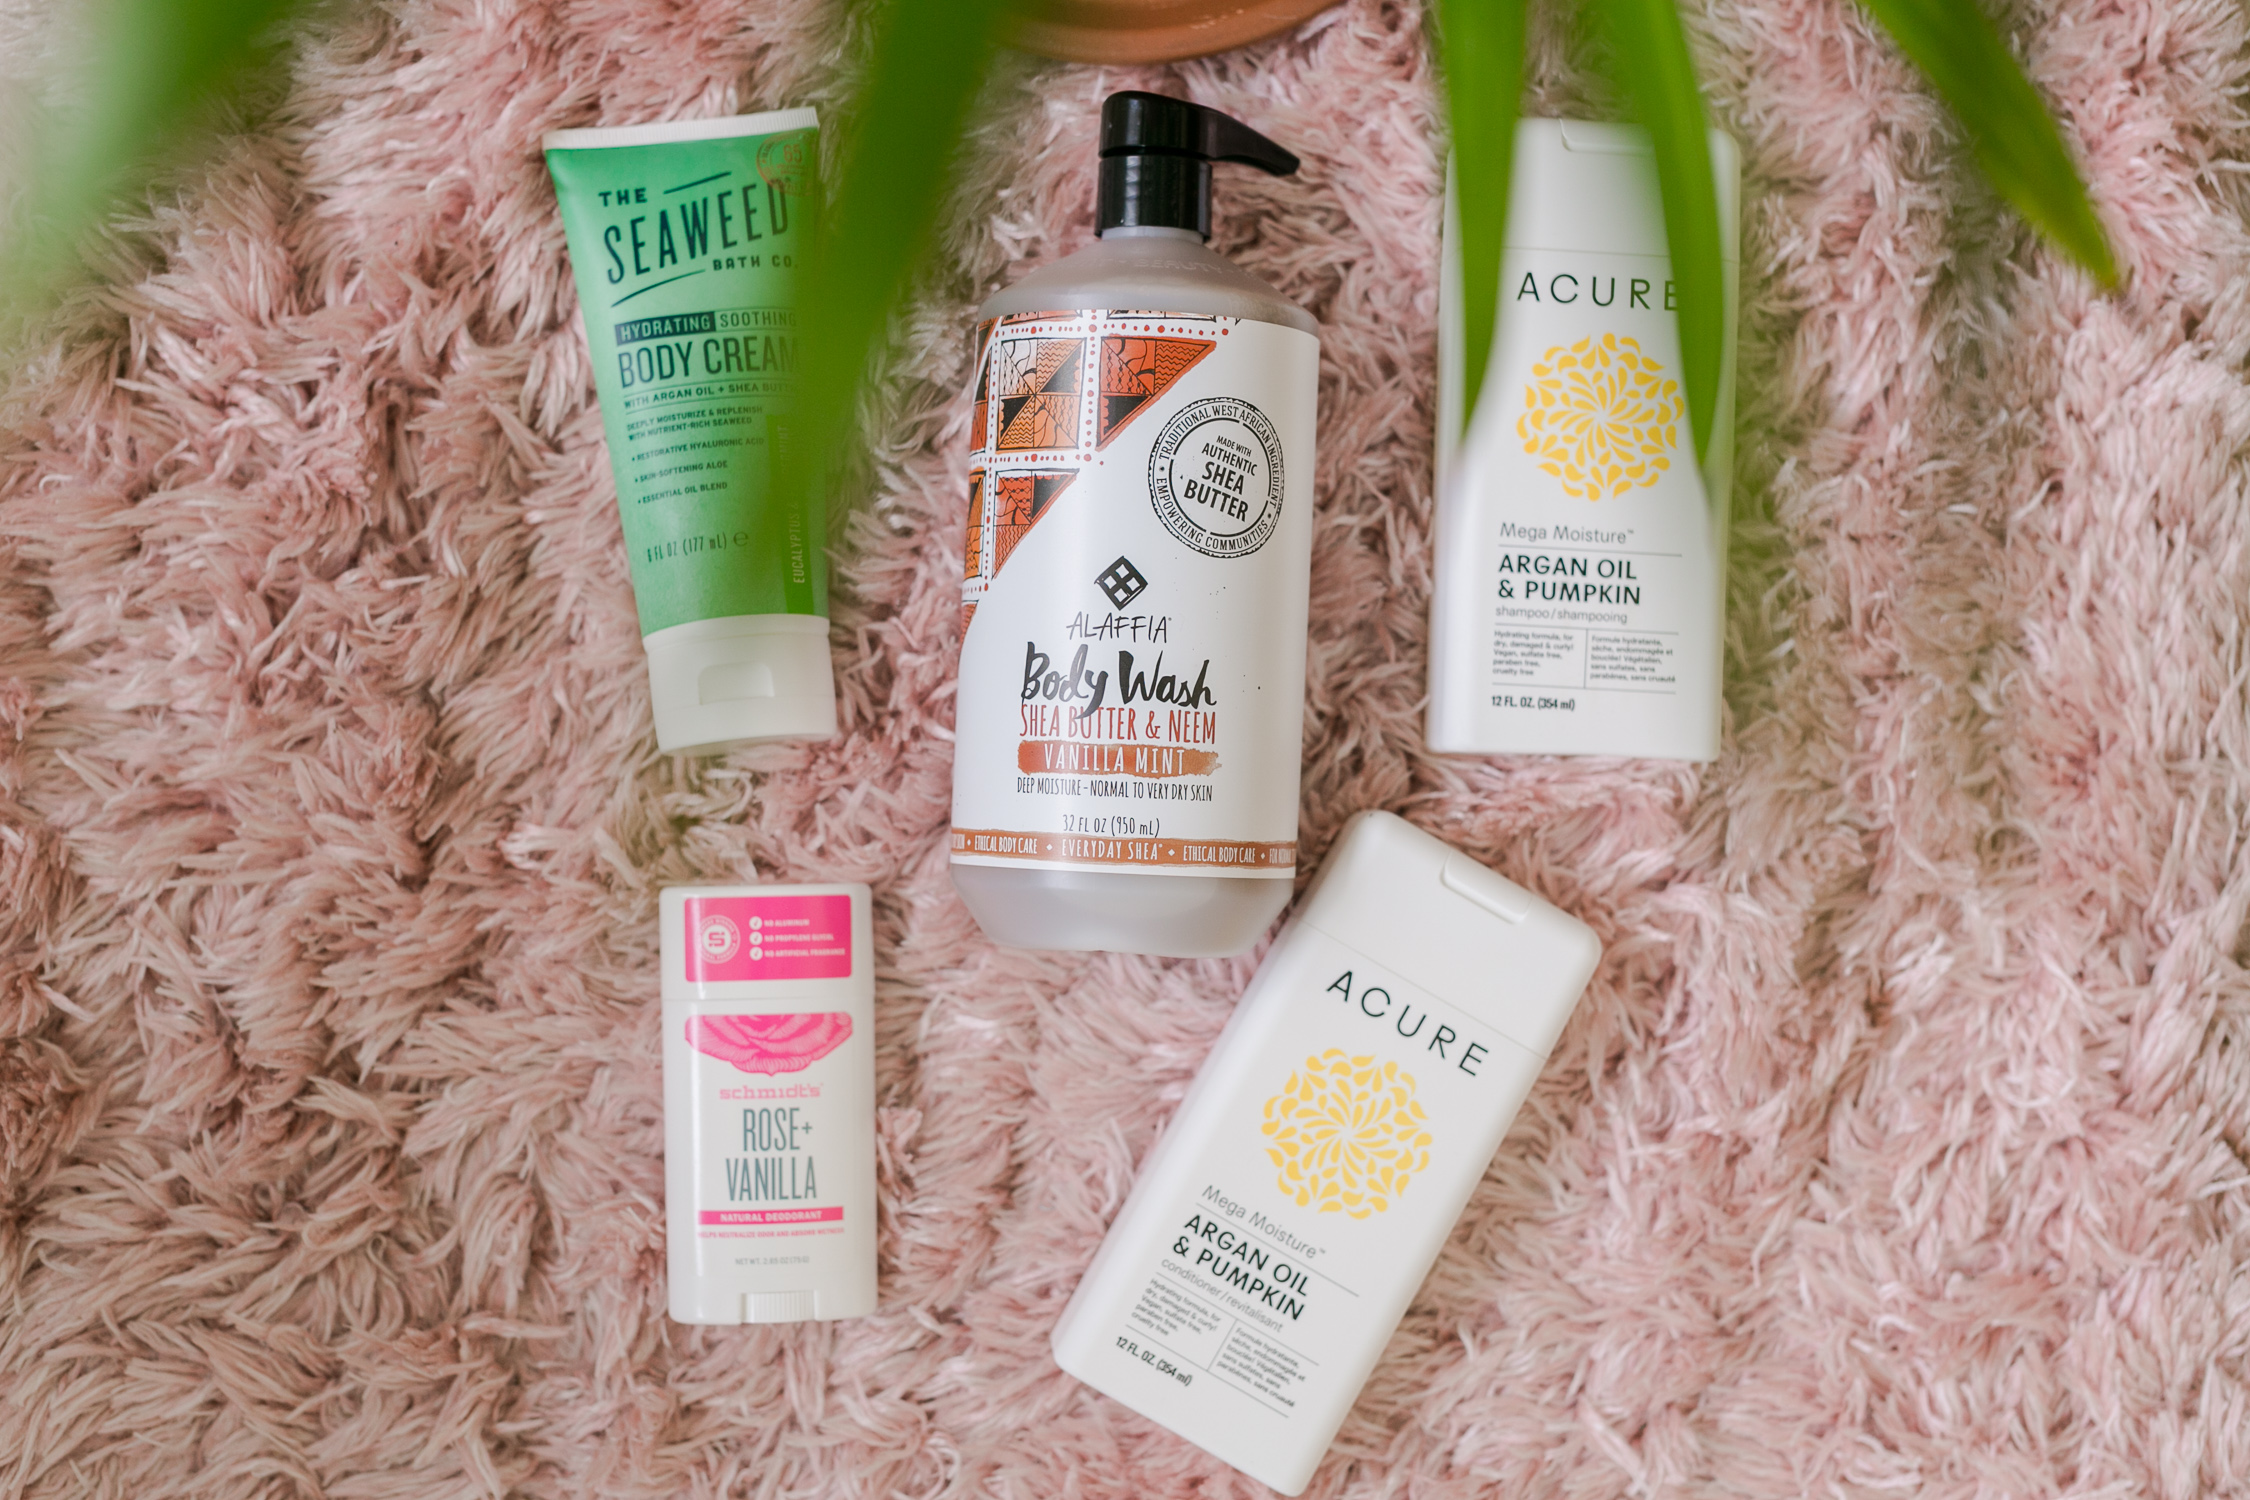 Five Clean Bath and Body Product Swaps From Target